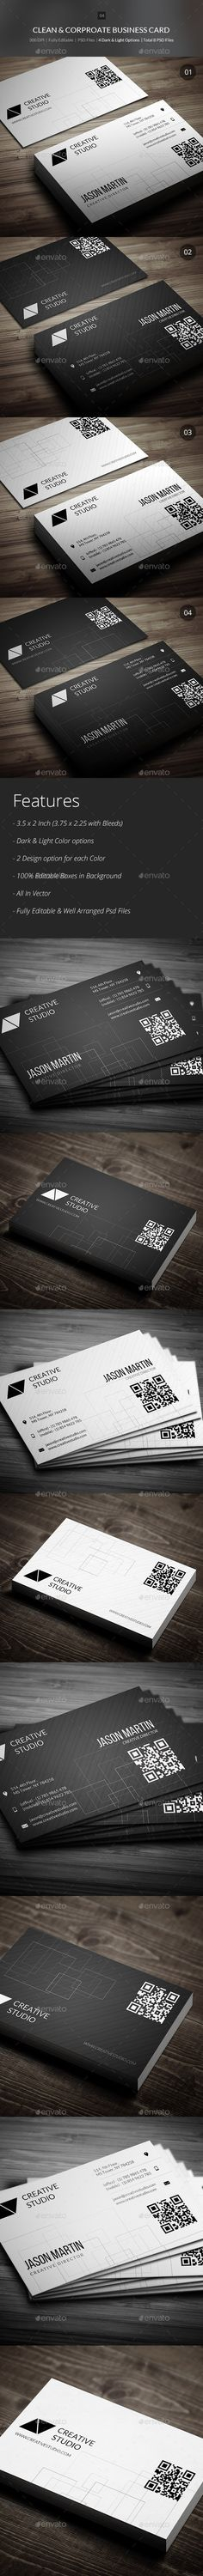 Clean & Corporate Business Cards - 04